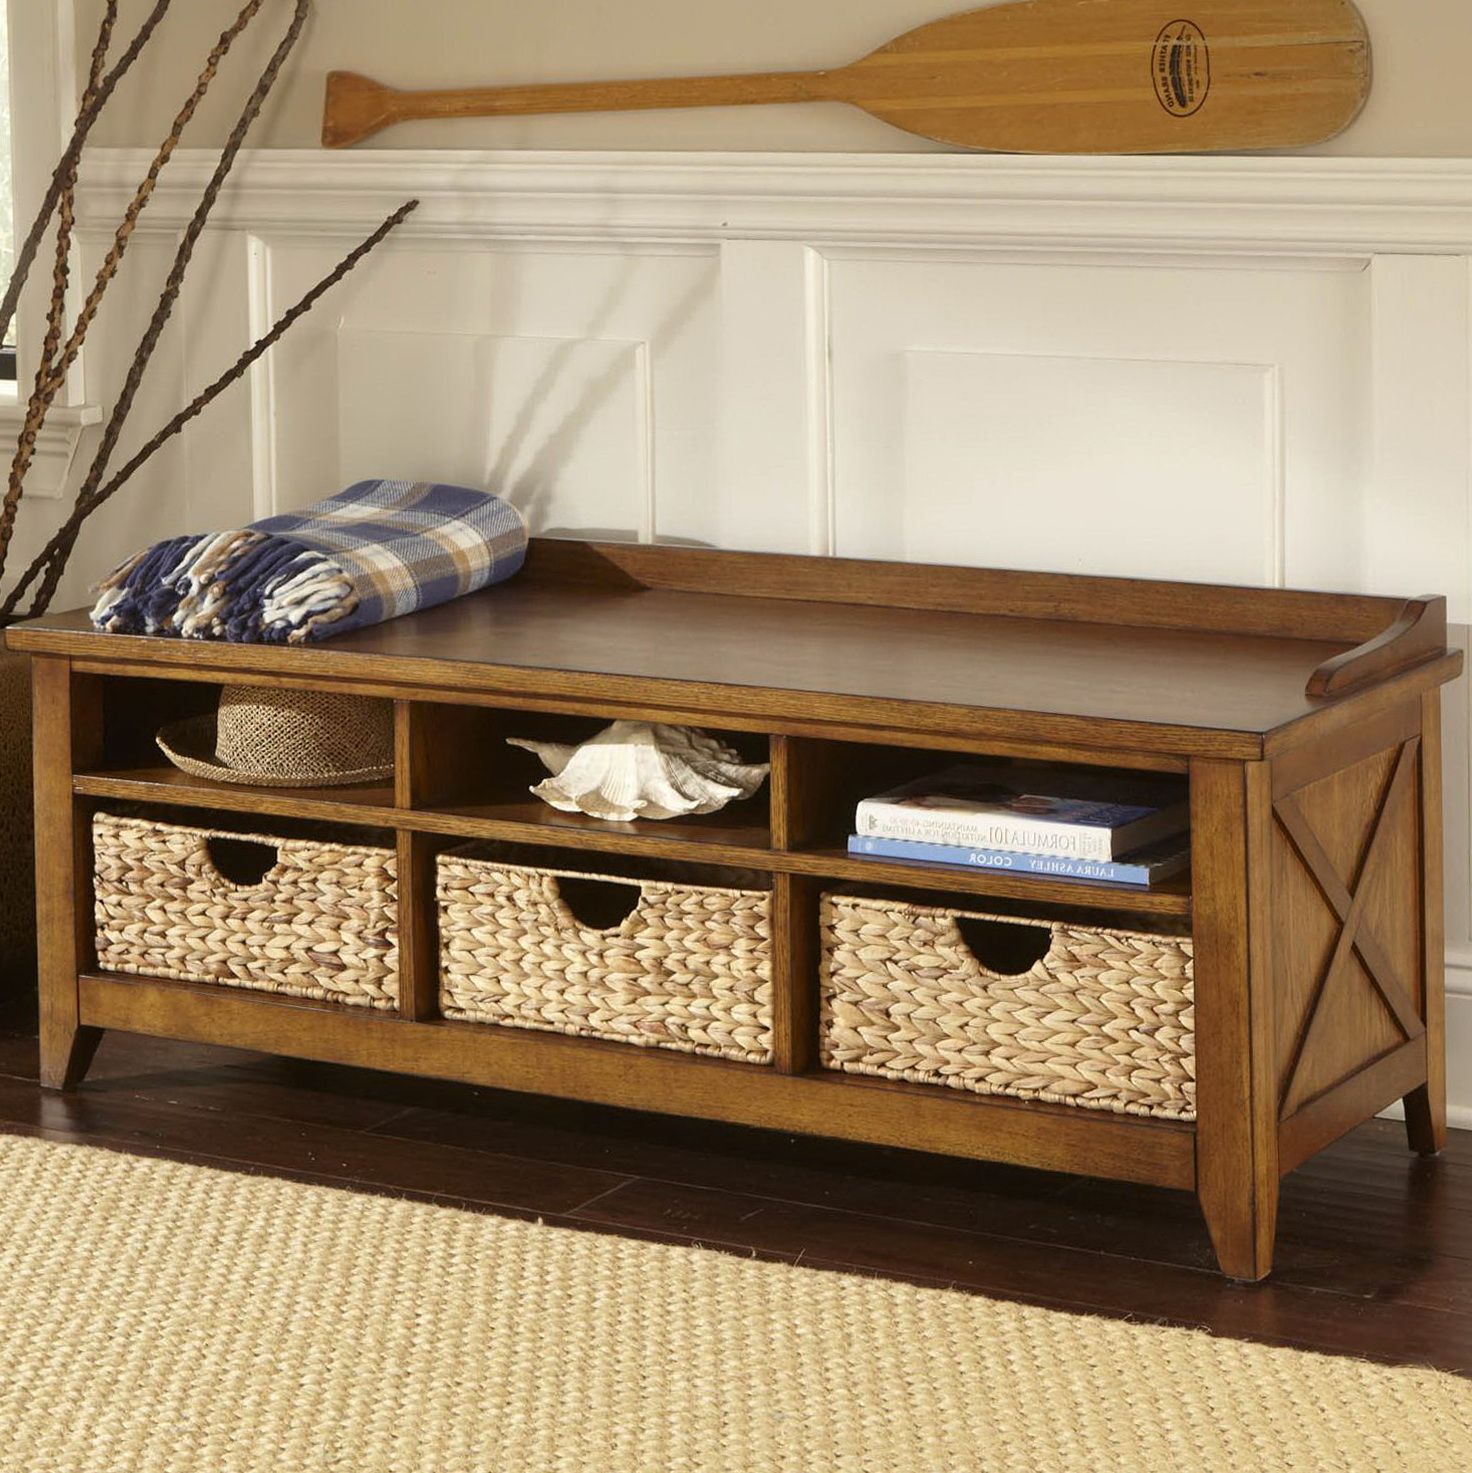 Foyer Bench Zoo : Small storage bench for foyer home design ideas